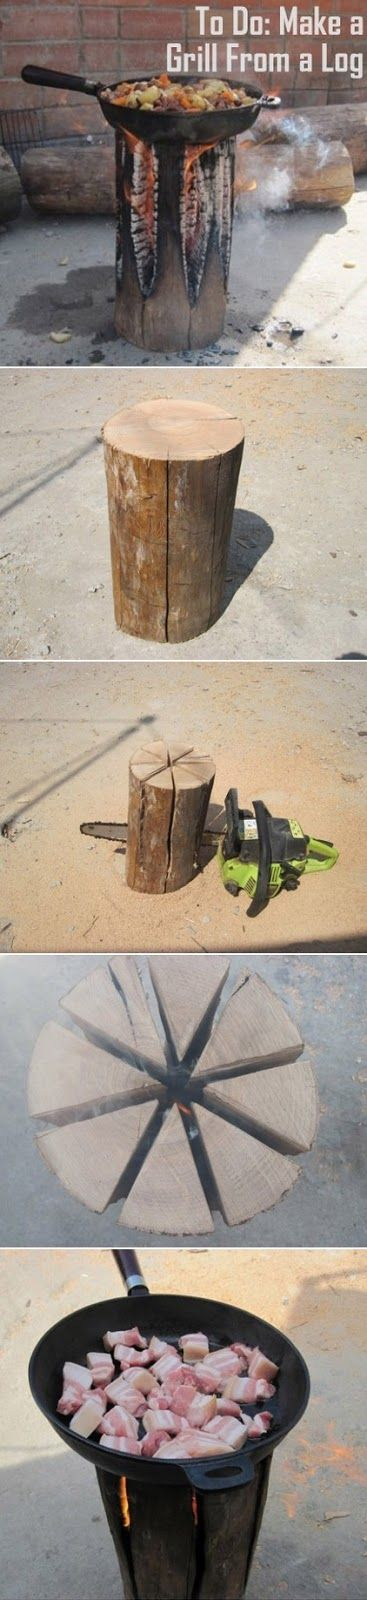 make a swedish fire log for outdoor cooking